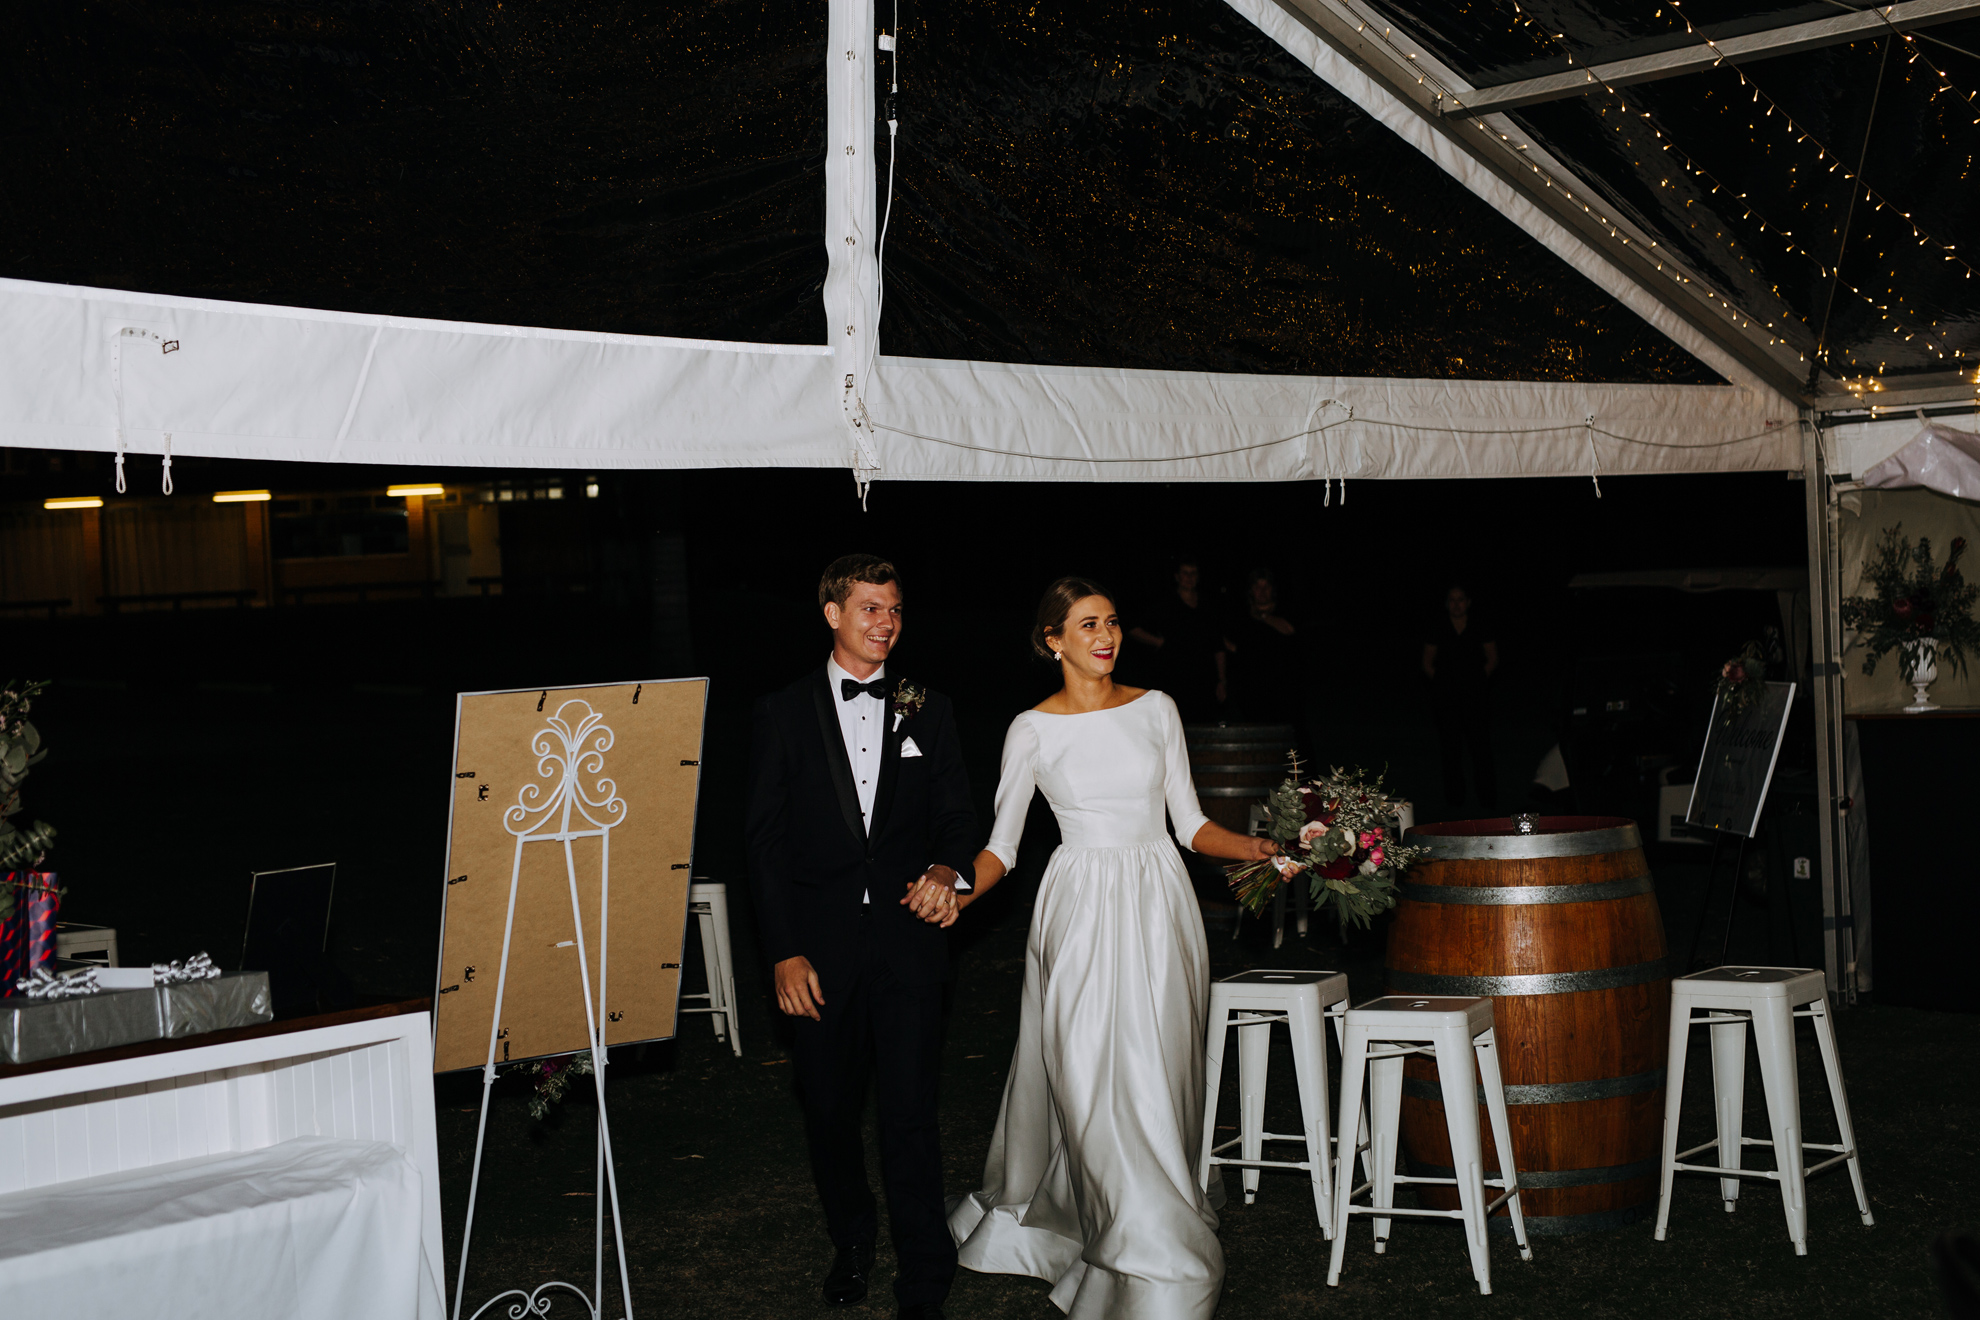 082-Chloe_Joe_Rockhampton_Wedding.jpg